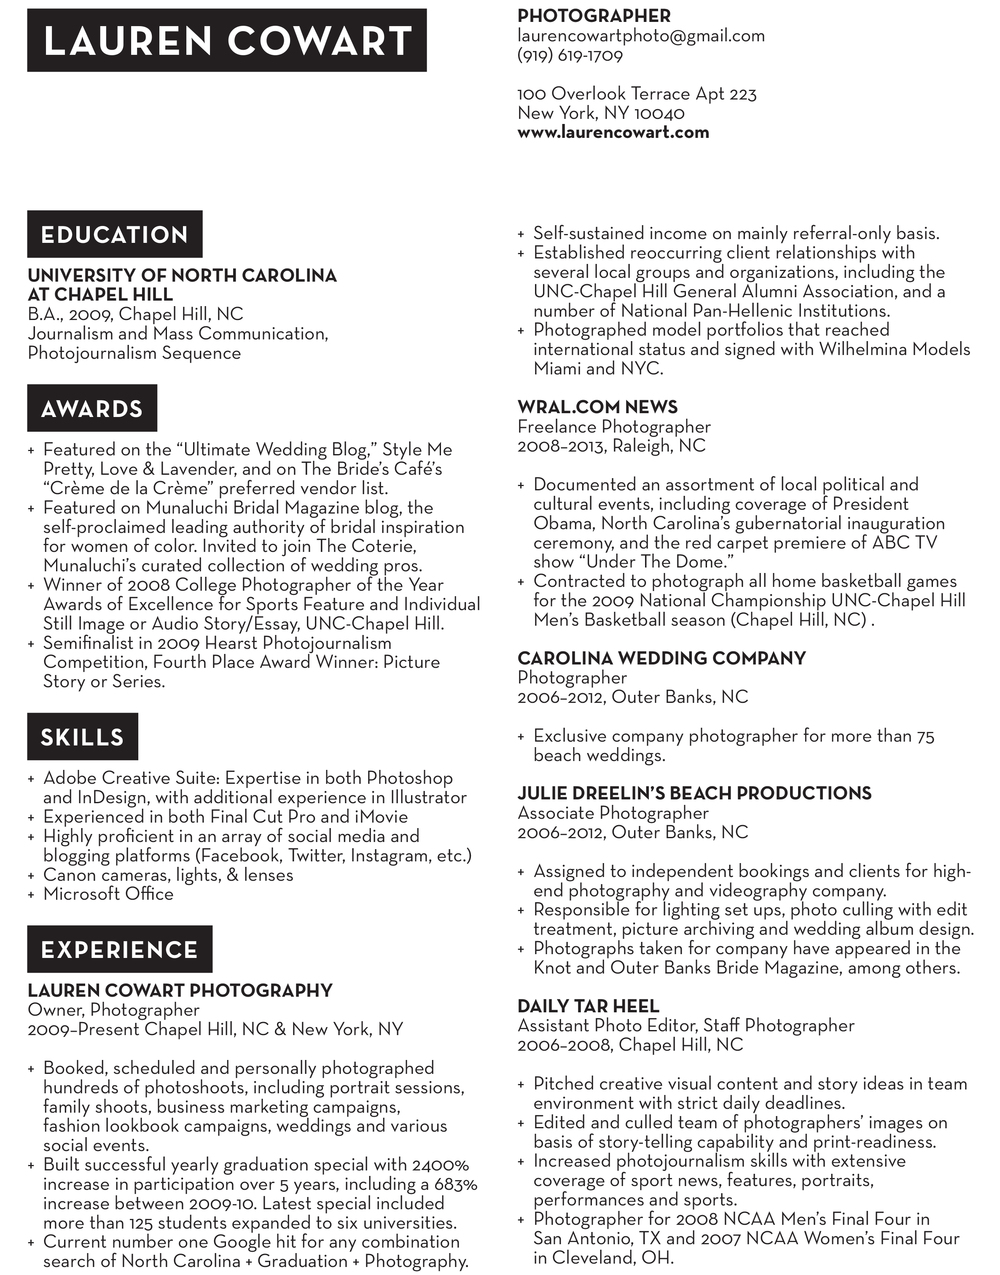 resume lauren cowart photography laurencowart 1 jpg